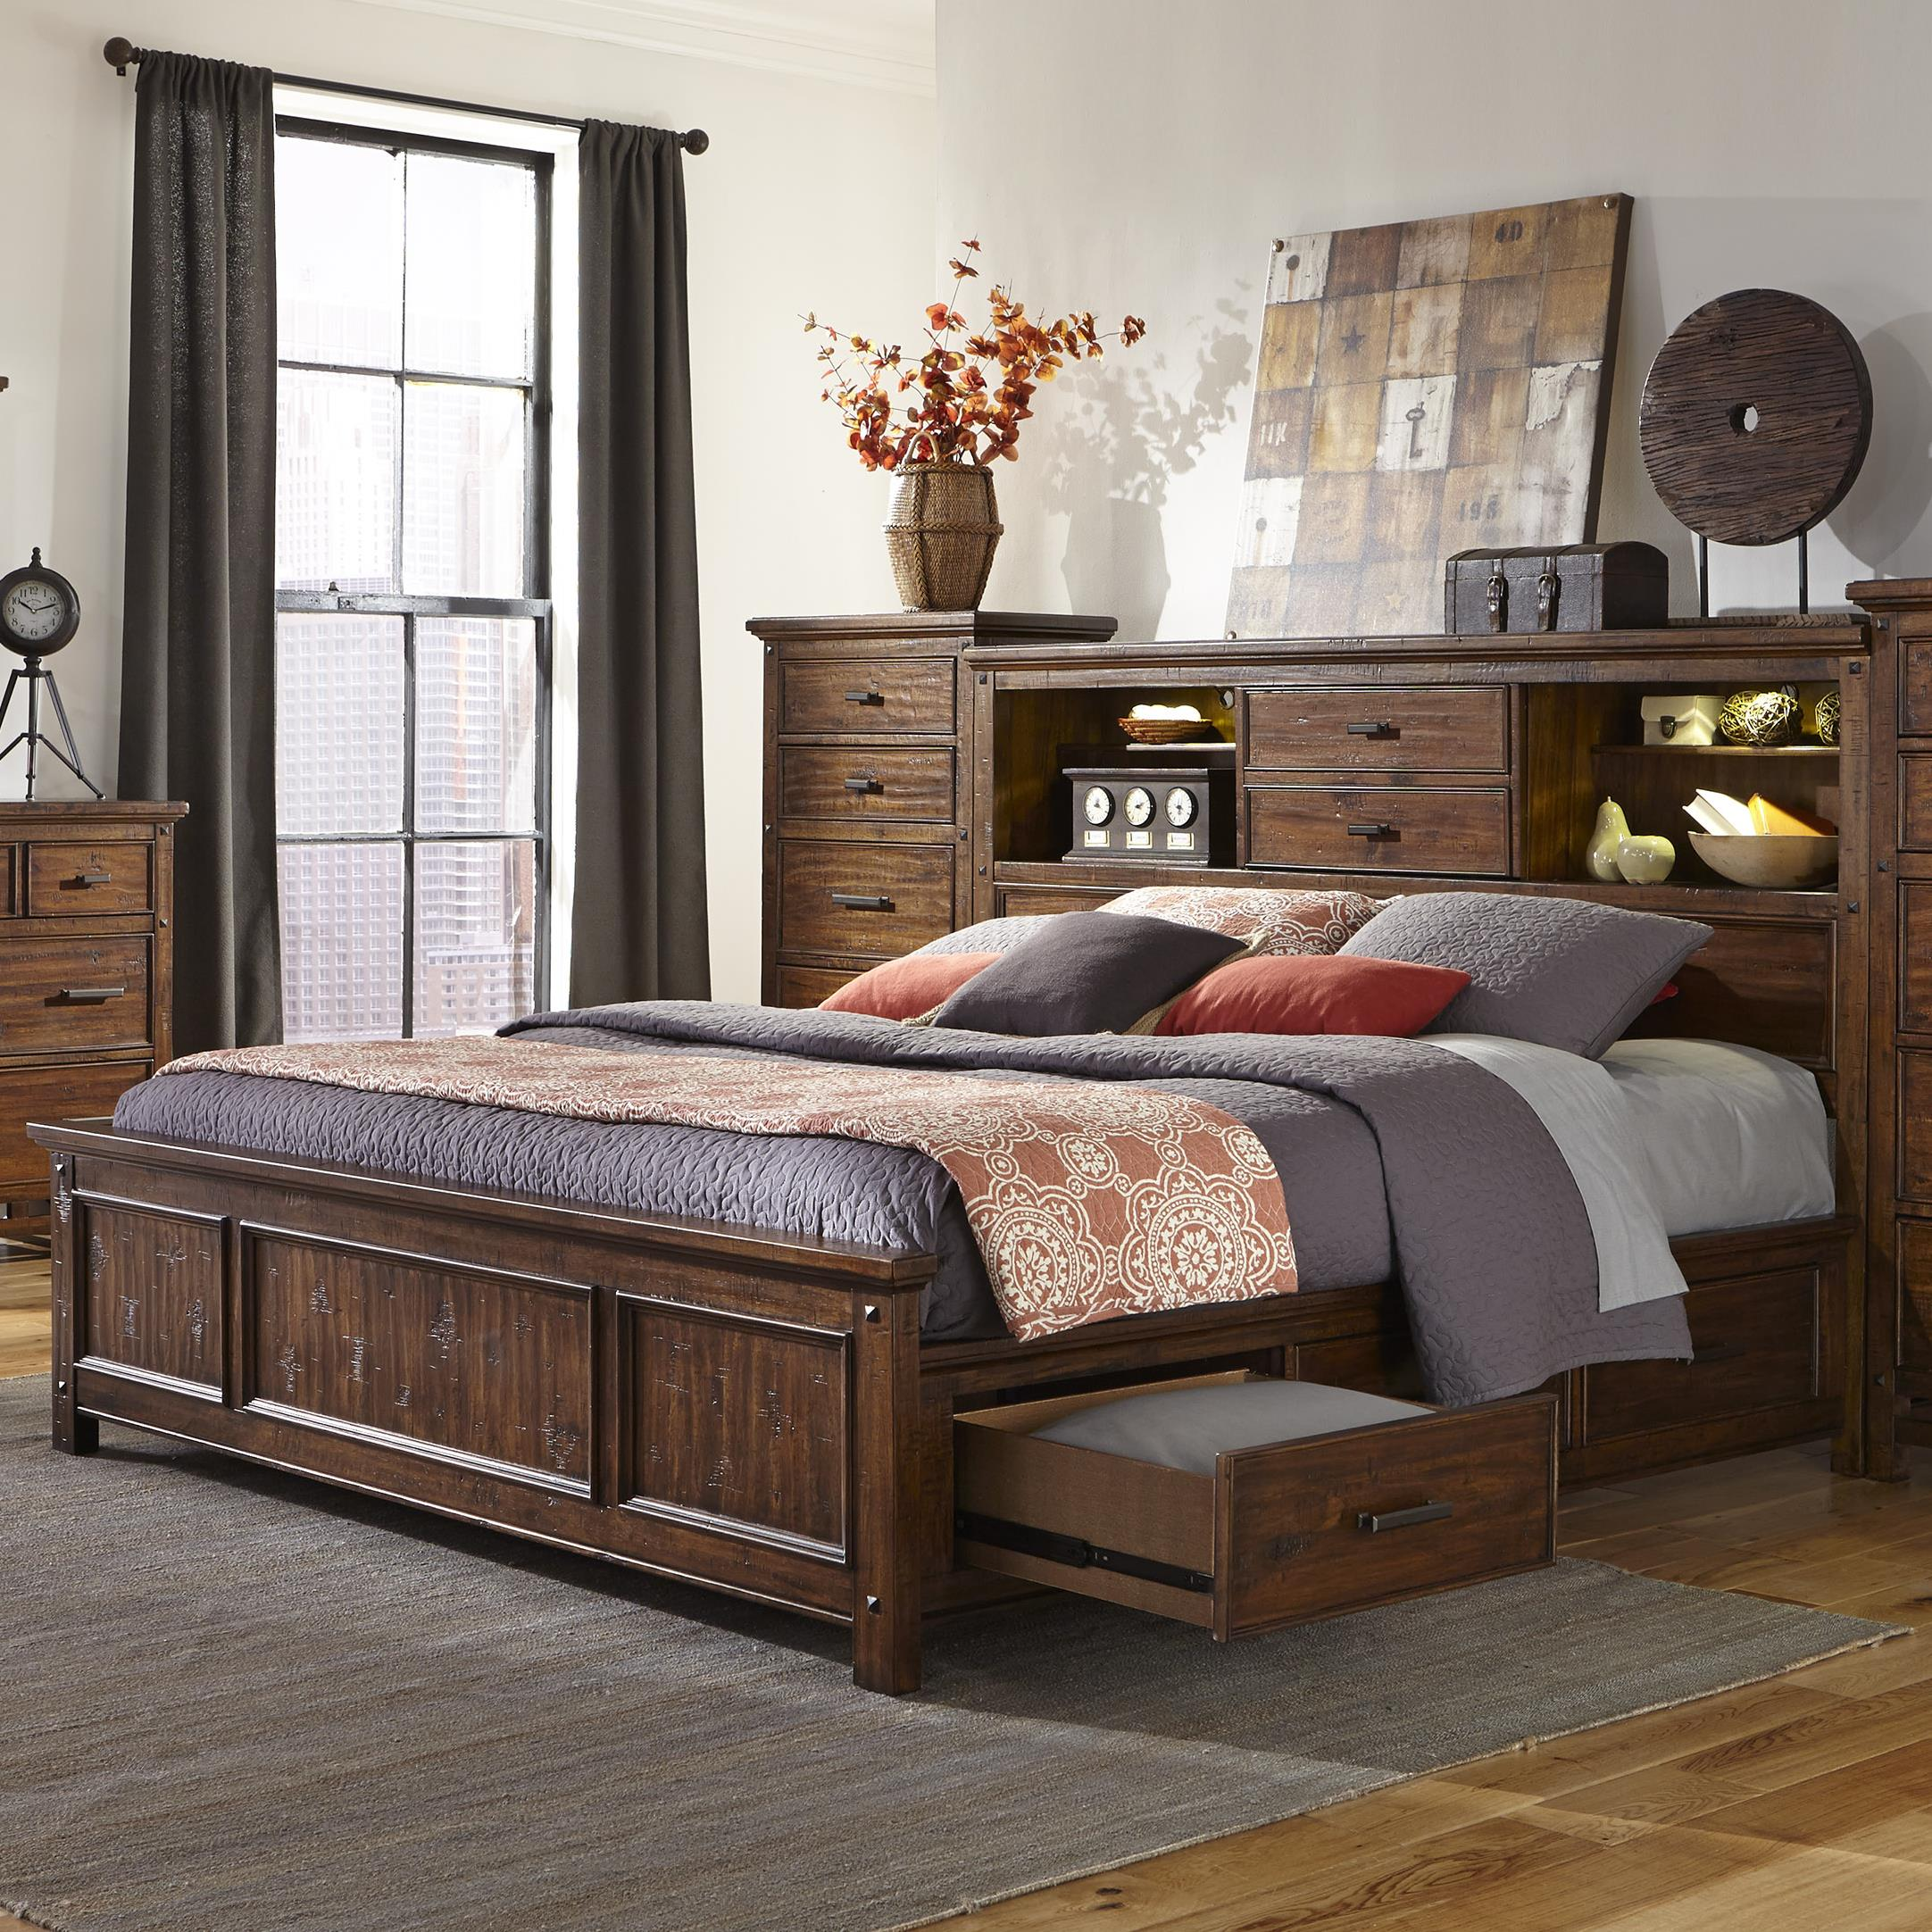 Bookcase Bed Wolf Creek King Bookcase Bed With Storage Rails By Intercon At Fisher Home Furnishings